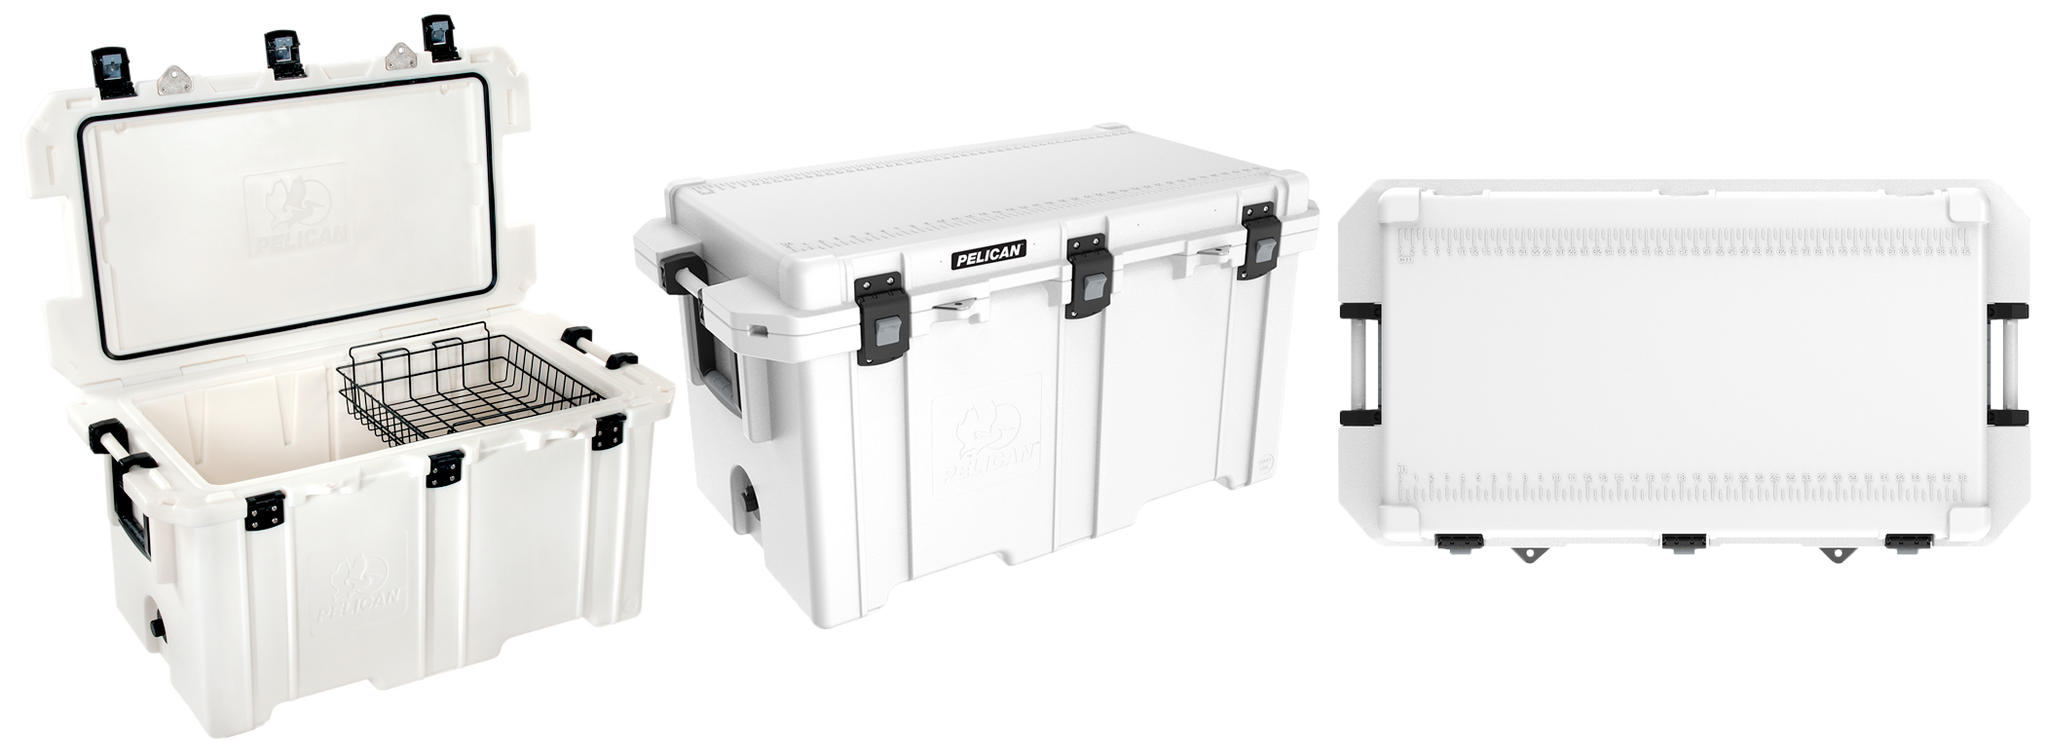 150QT Pelican Elite Cooler